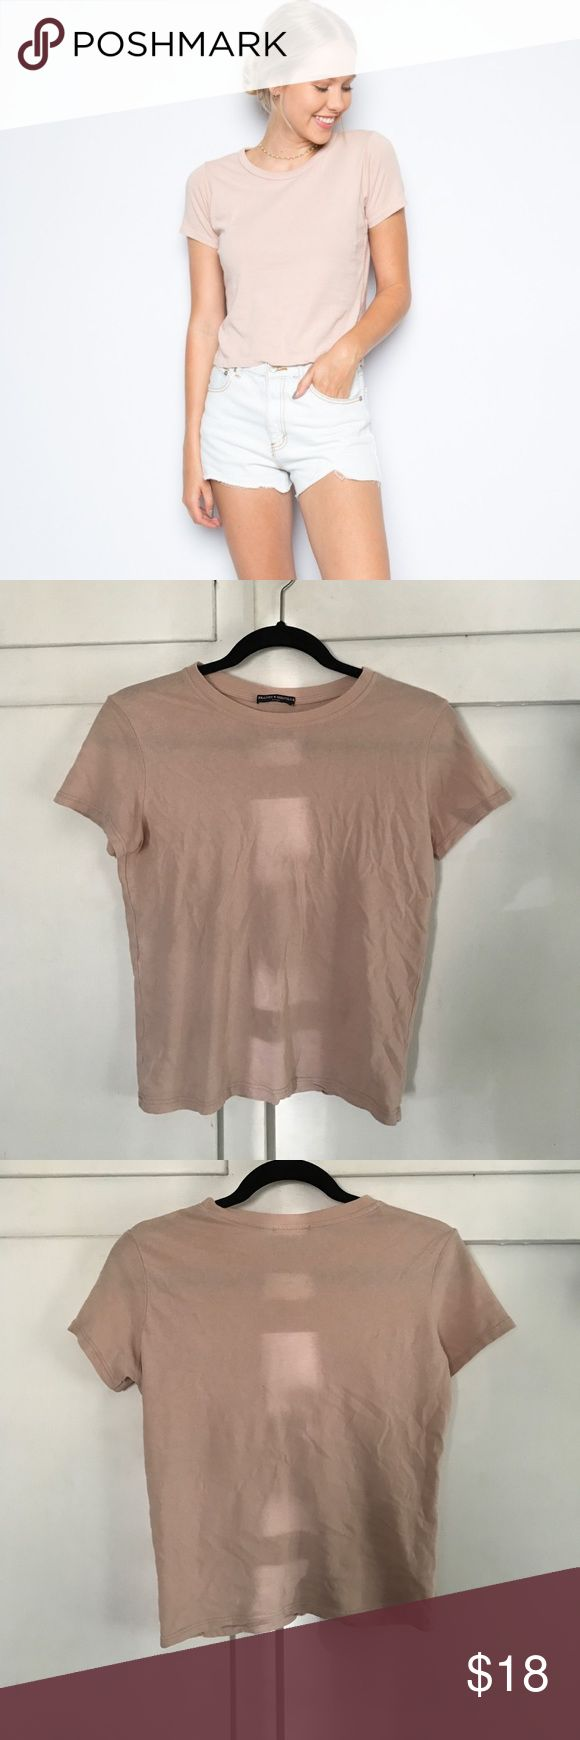 Brandy Melville Baby Pink Tee Never worn, looks cute with jeans or shorts Brandy Melville Tops Tees - Long Sleeve